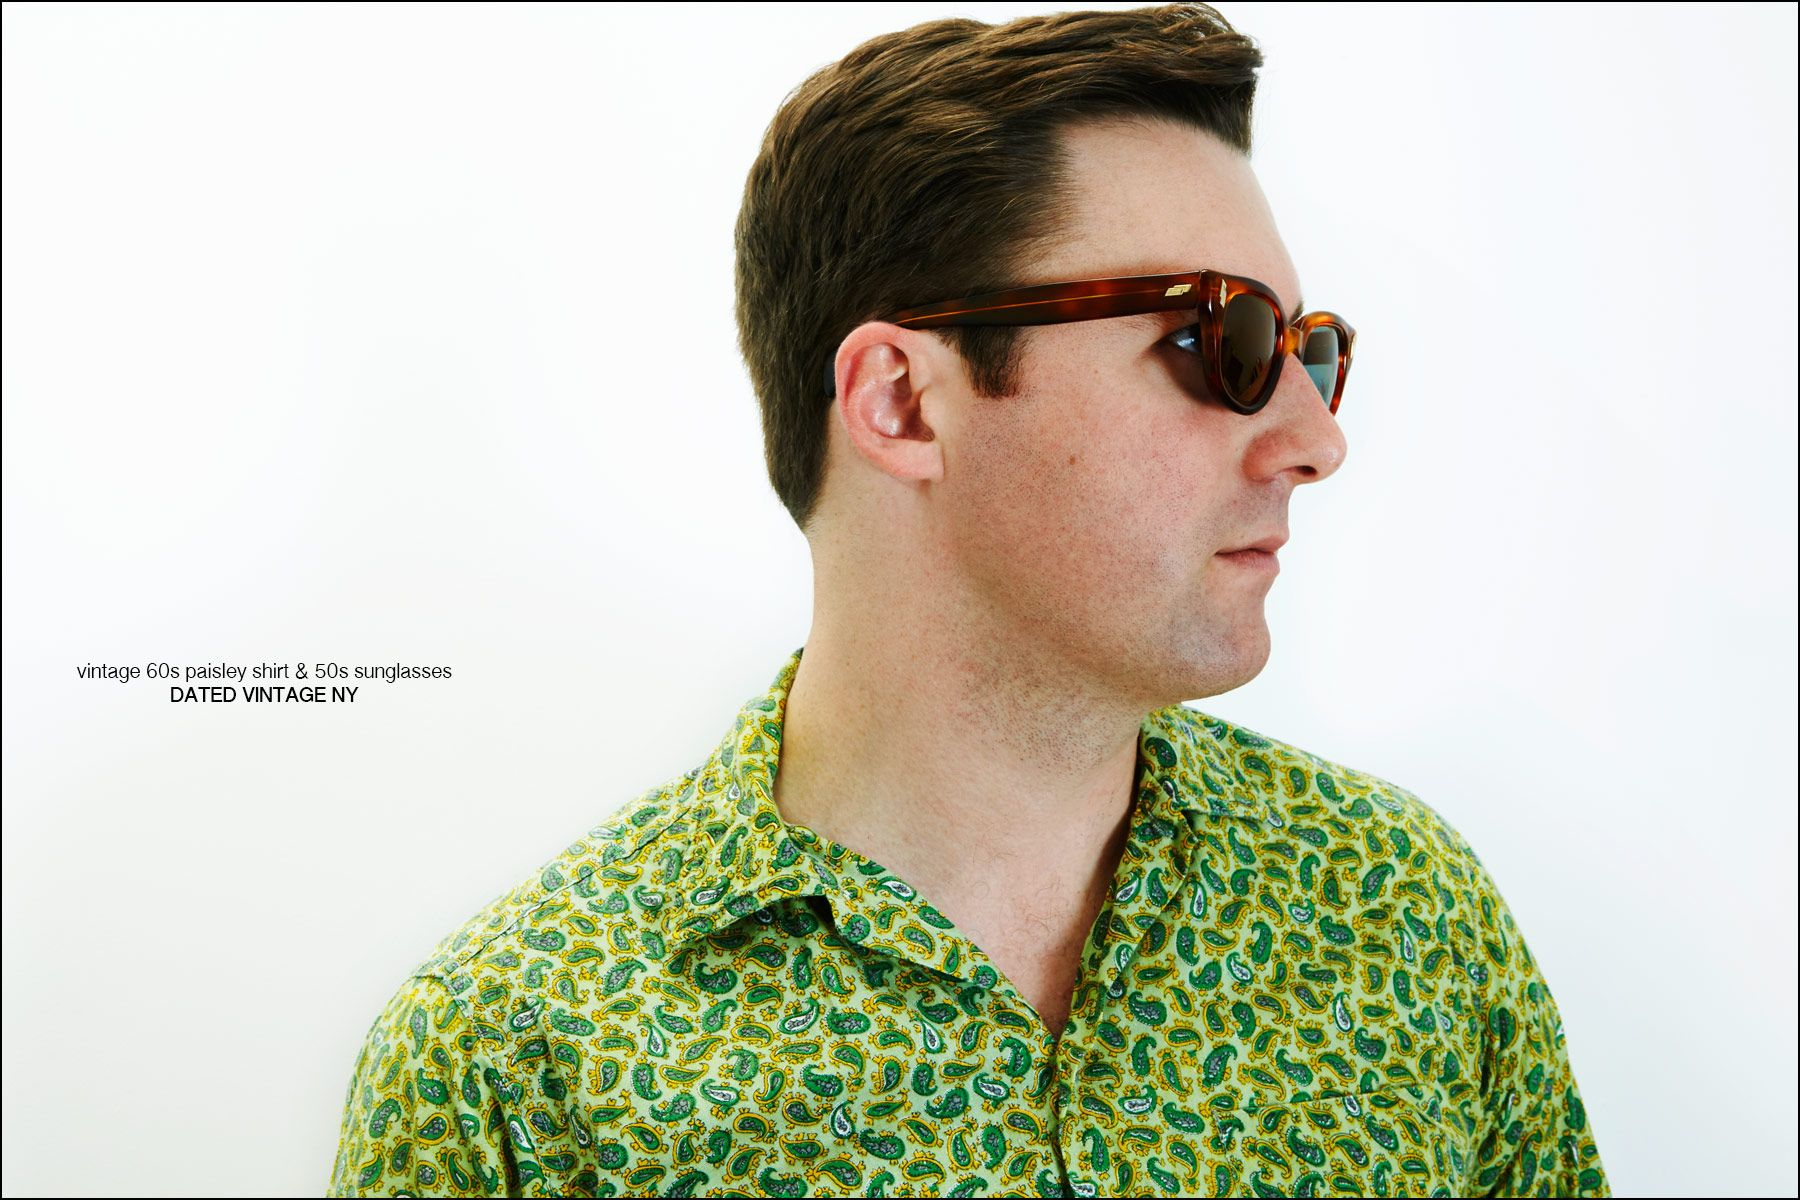 Nick Waterhouse photographed in clothing from Dated Vintage NY. Photography by Alexander Thompson for Ponyboy magazine New York.